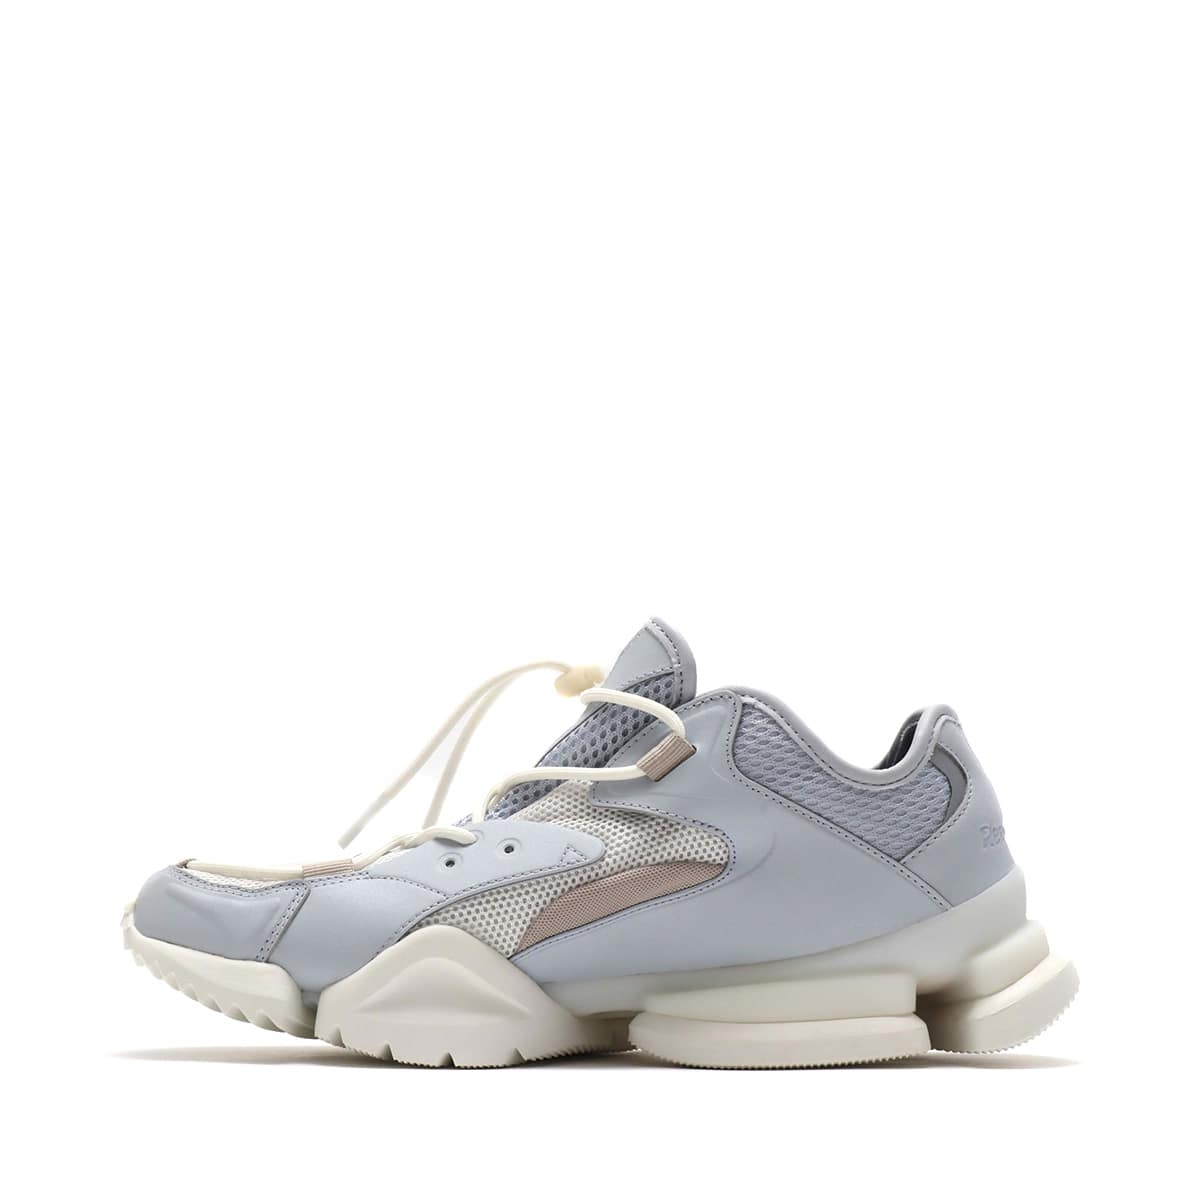 """Reebok RUN R96 GRY/CHALK/SAND/GRY 19FW-I""_photo_3"